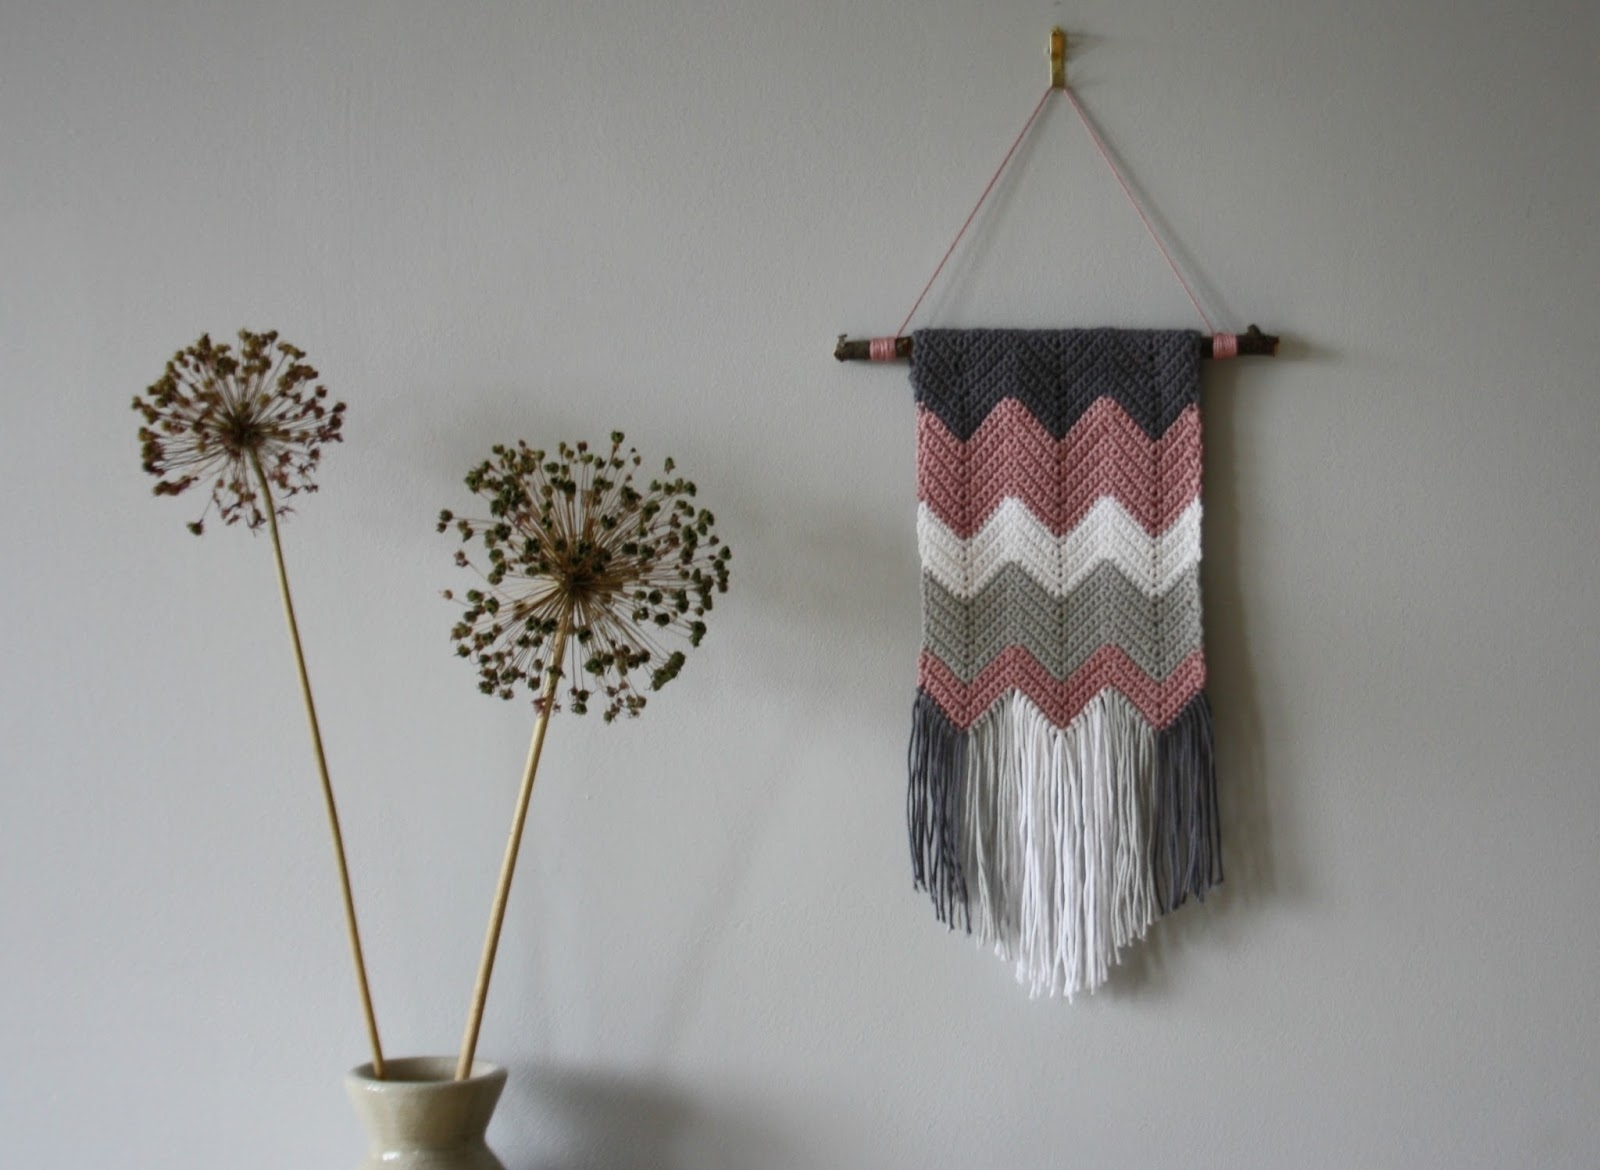 Tales From A Happy House.: A Crocheted Zigzag Wall Hanging within Crochet Wall Art (Image 20 of 20)